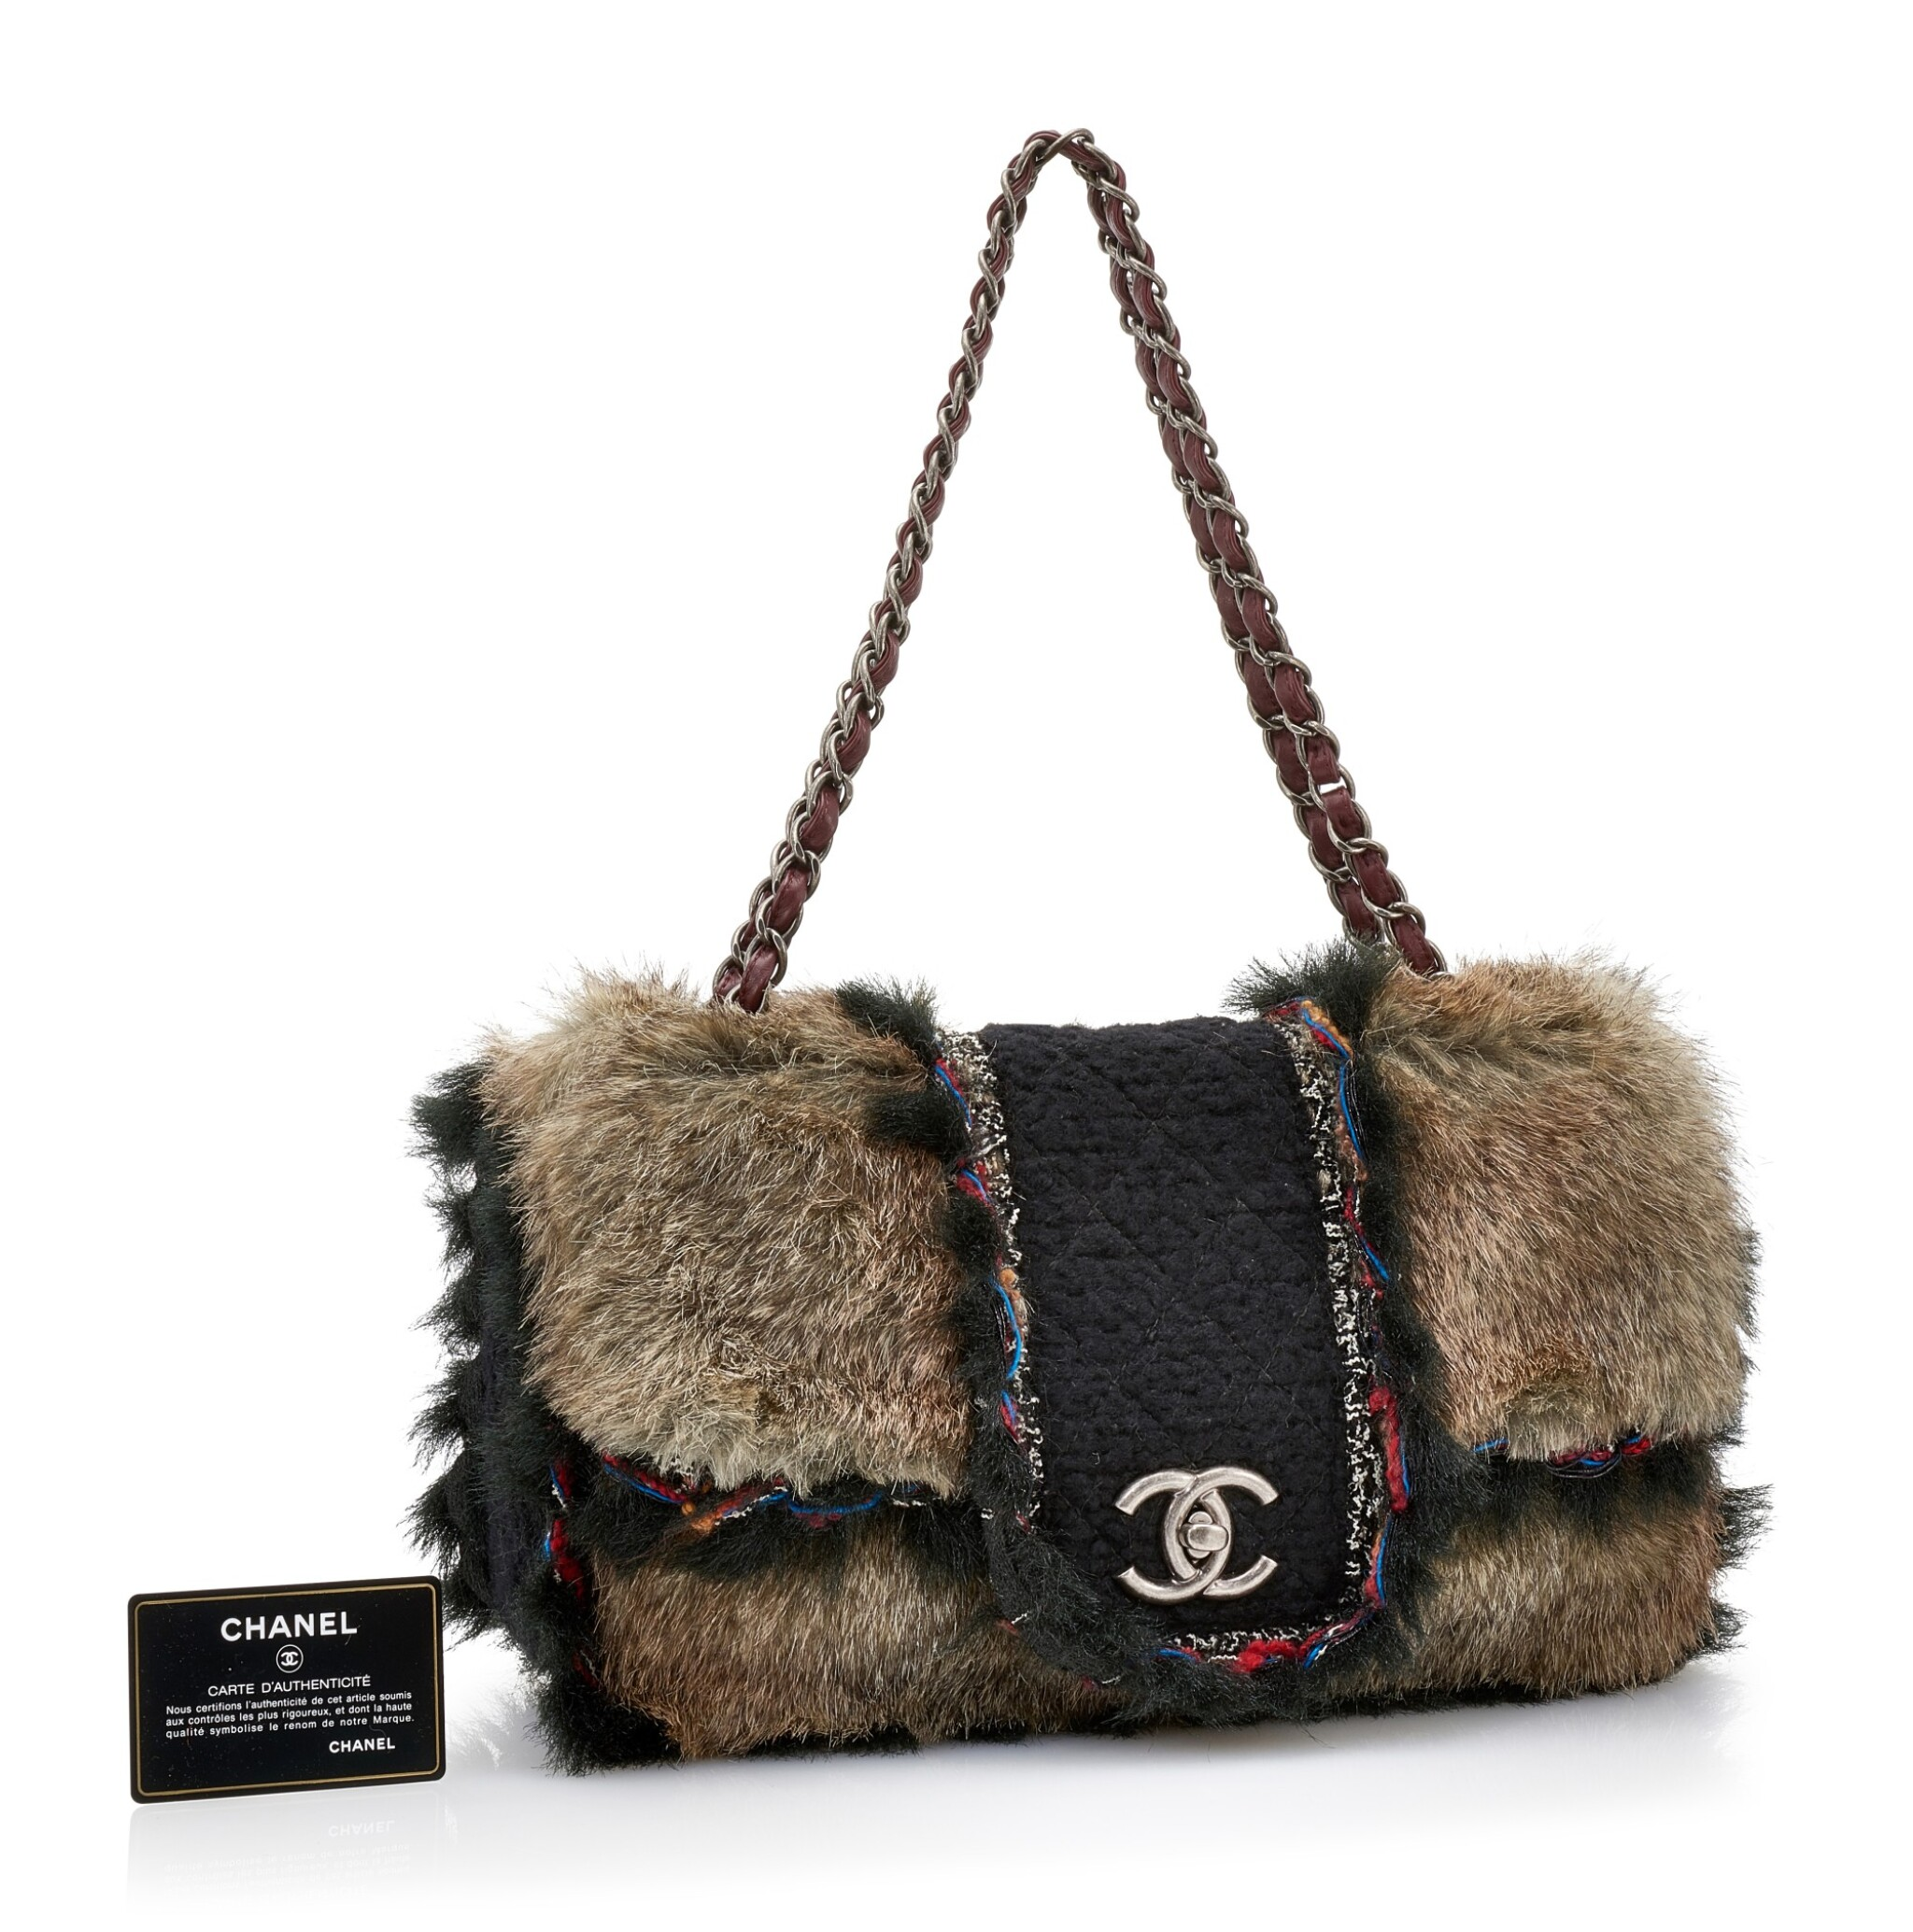 RARE FANTASY FAUX FUR MAXI FLAP CLASSIC SHOULDER BAG, CHANEL